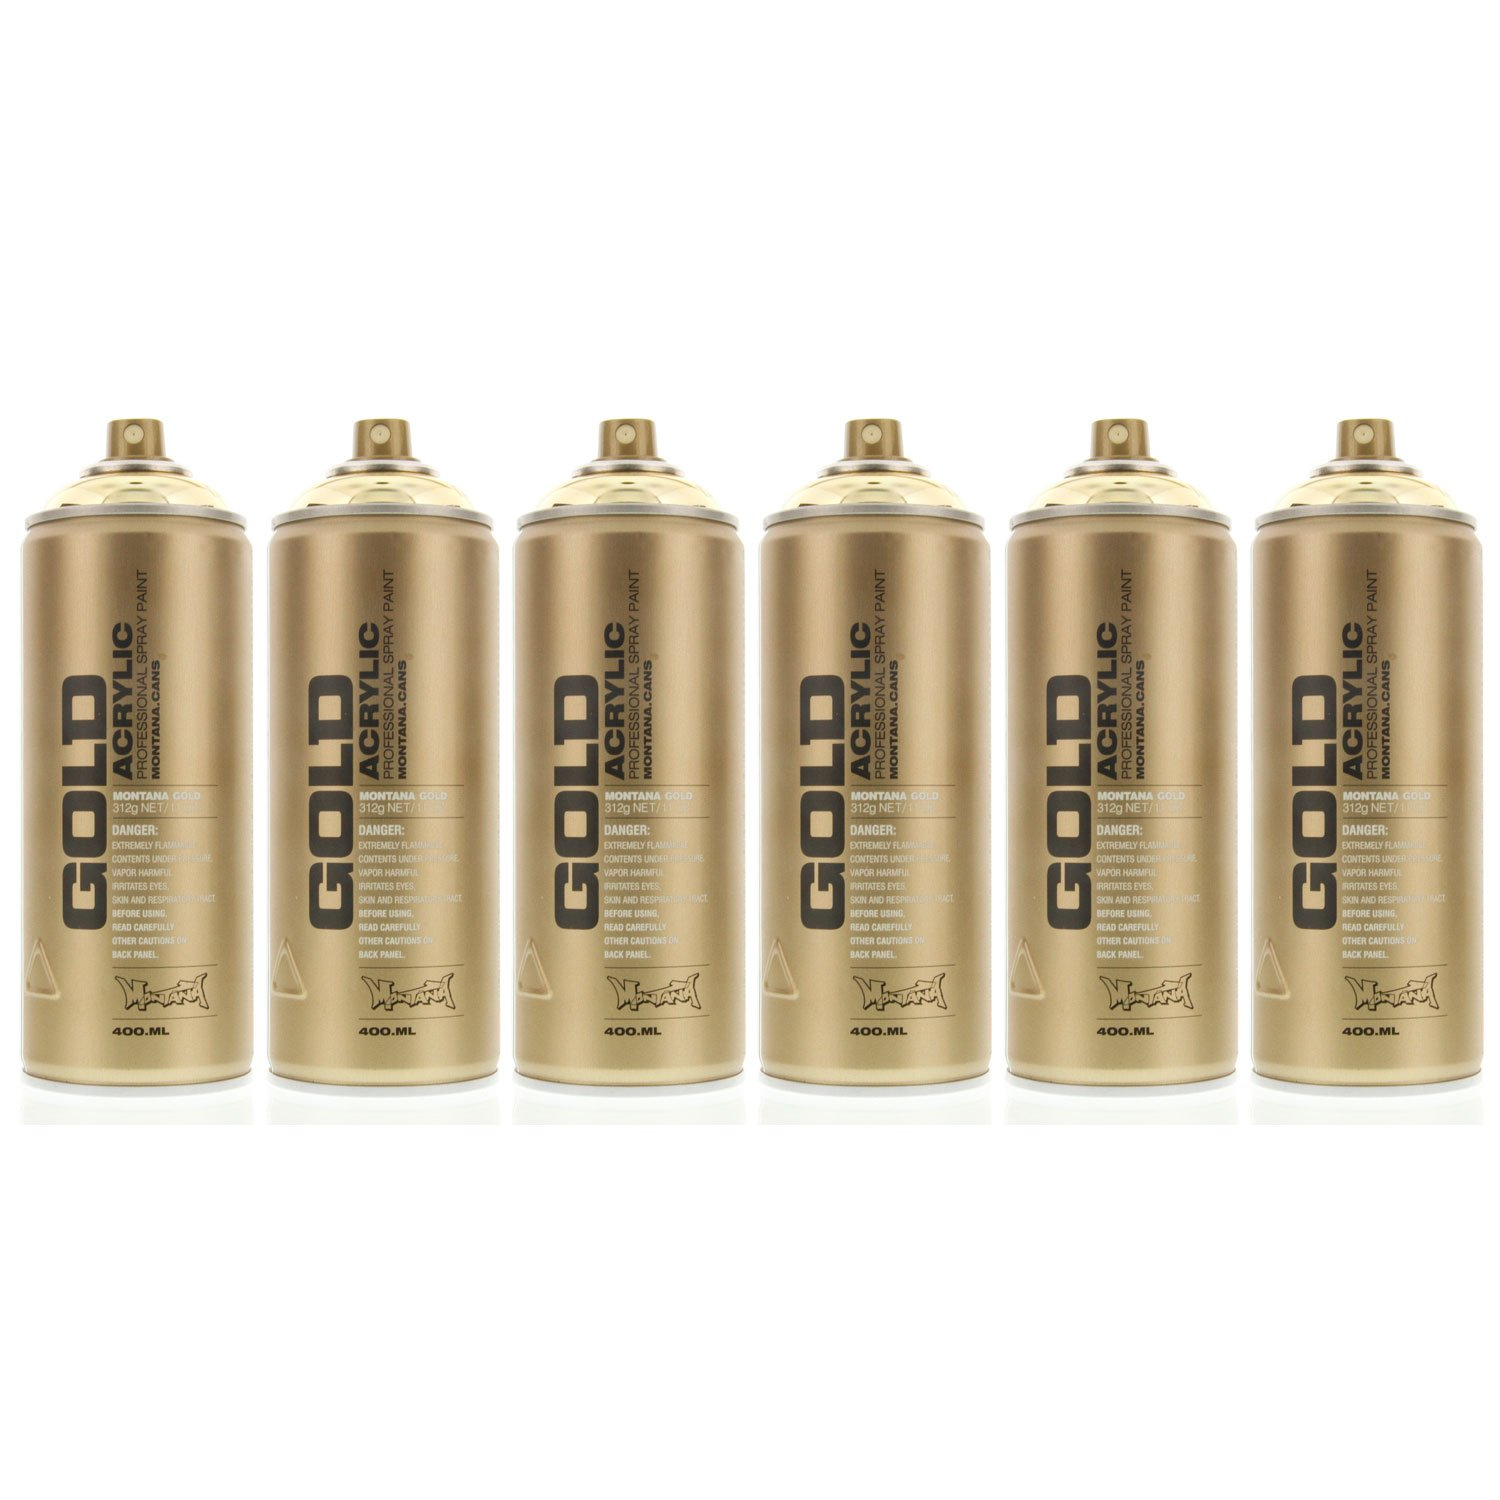 montana gold acrylic spray paint gold chrome pack of 6 cans ebay. Black Bedroom Furniture Sets. Home Design Ideas